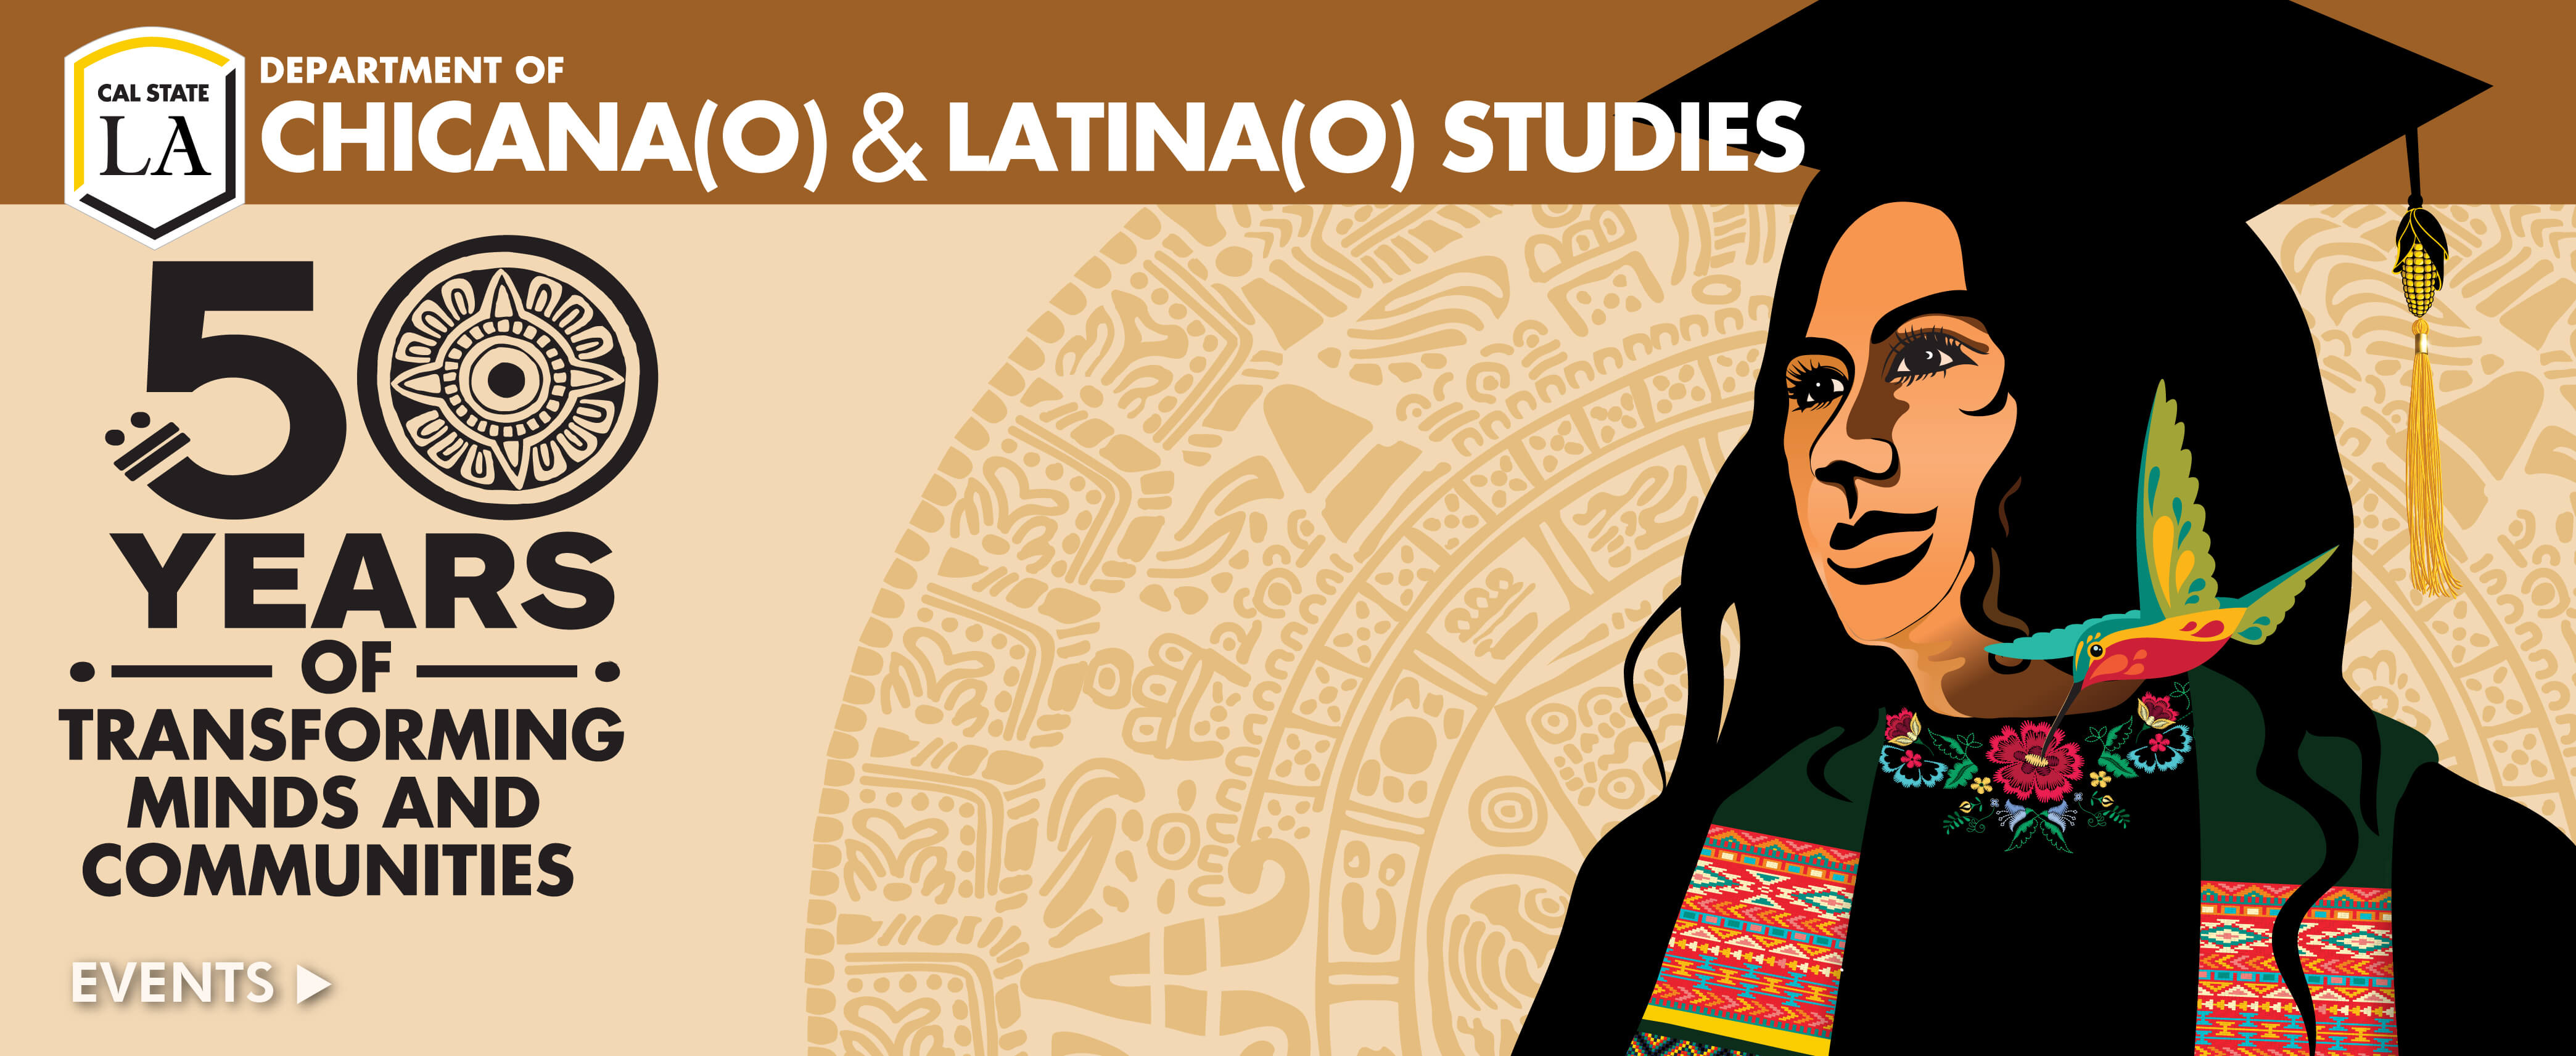 Chicano(a) and Latino(a) Studies | 50 Years of Transforming Minds and Communities